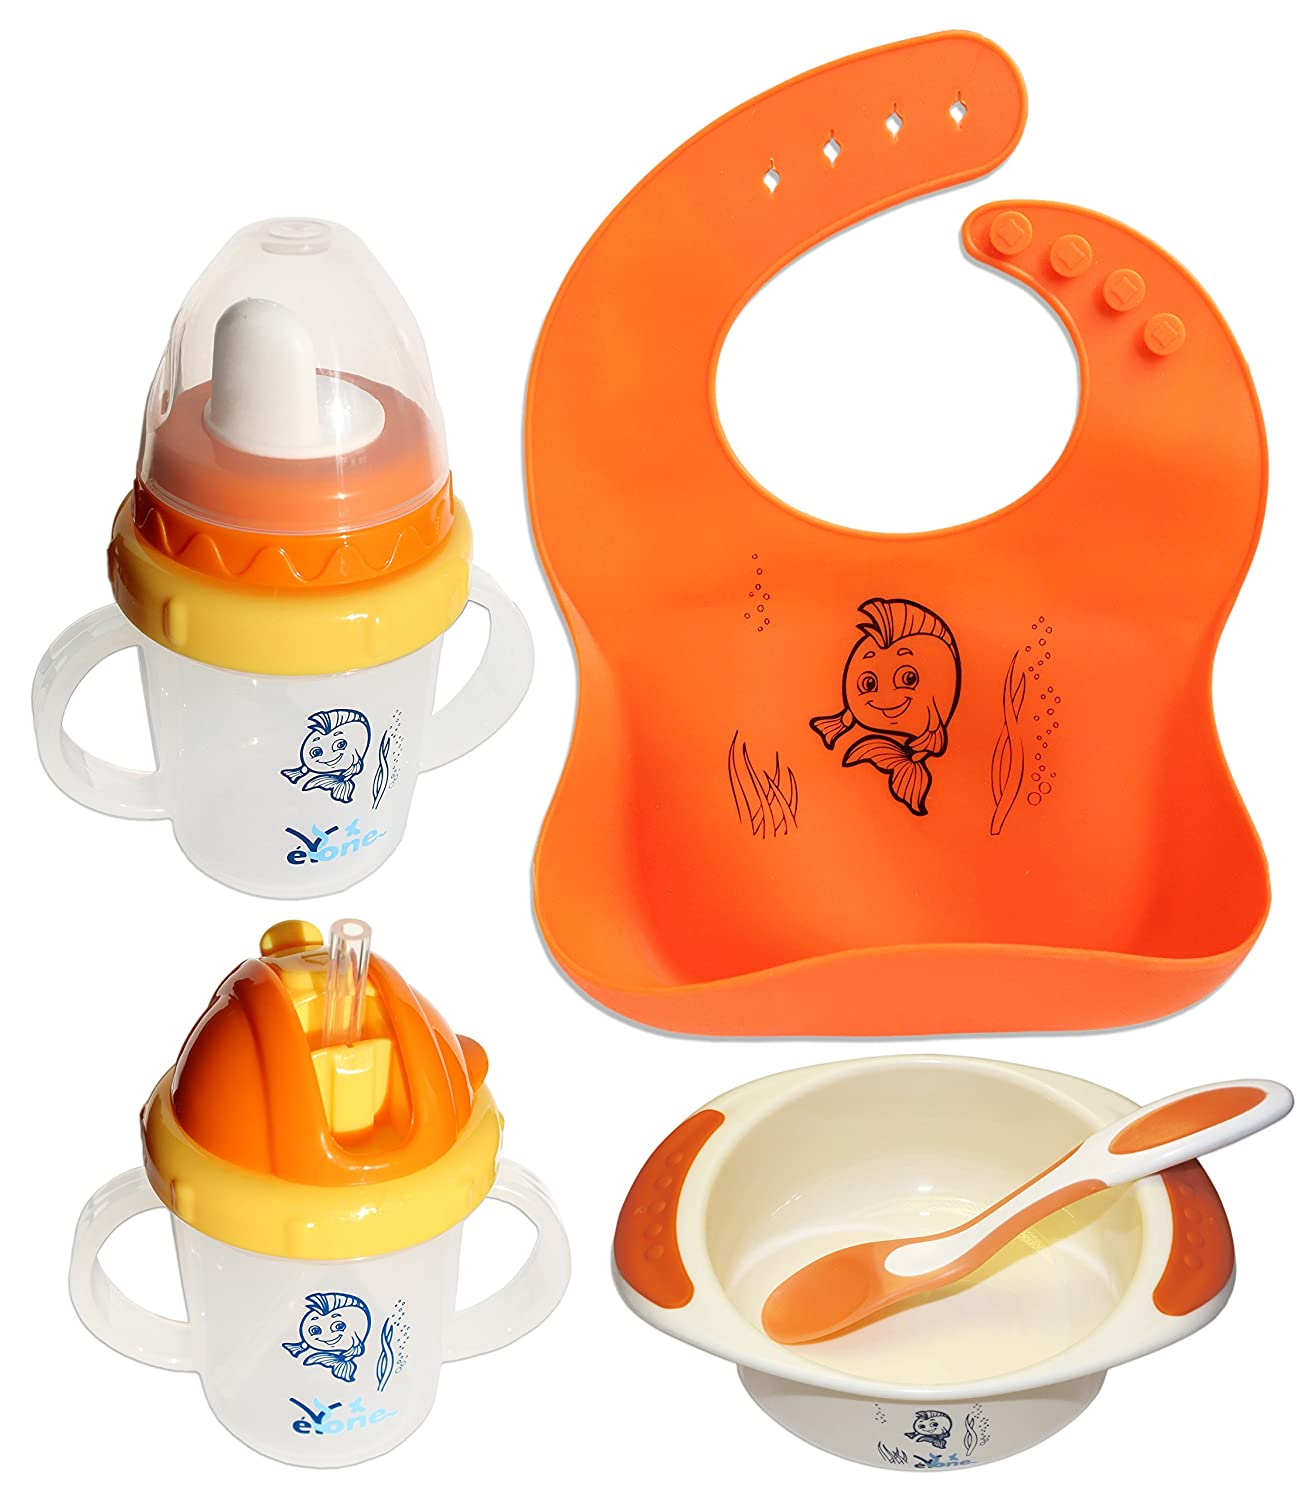 Baby Feeding Set for Boys & Girls, BPA Free Sippy Cup + Training Cup with a Straw + Waterproof Silicone Bib + Bowl with Color Change Spoon (5 pcs) eYone Manufacturing